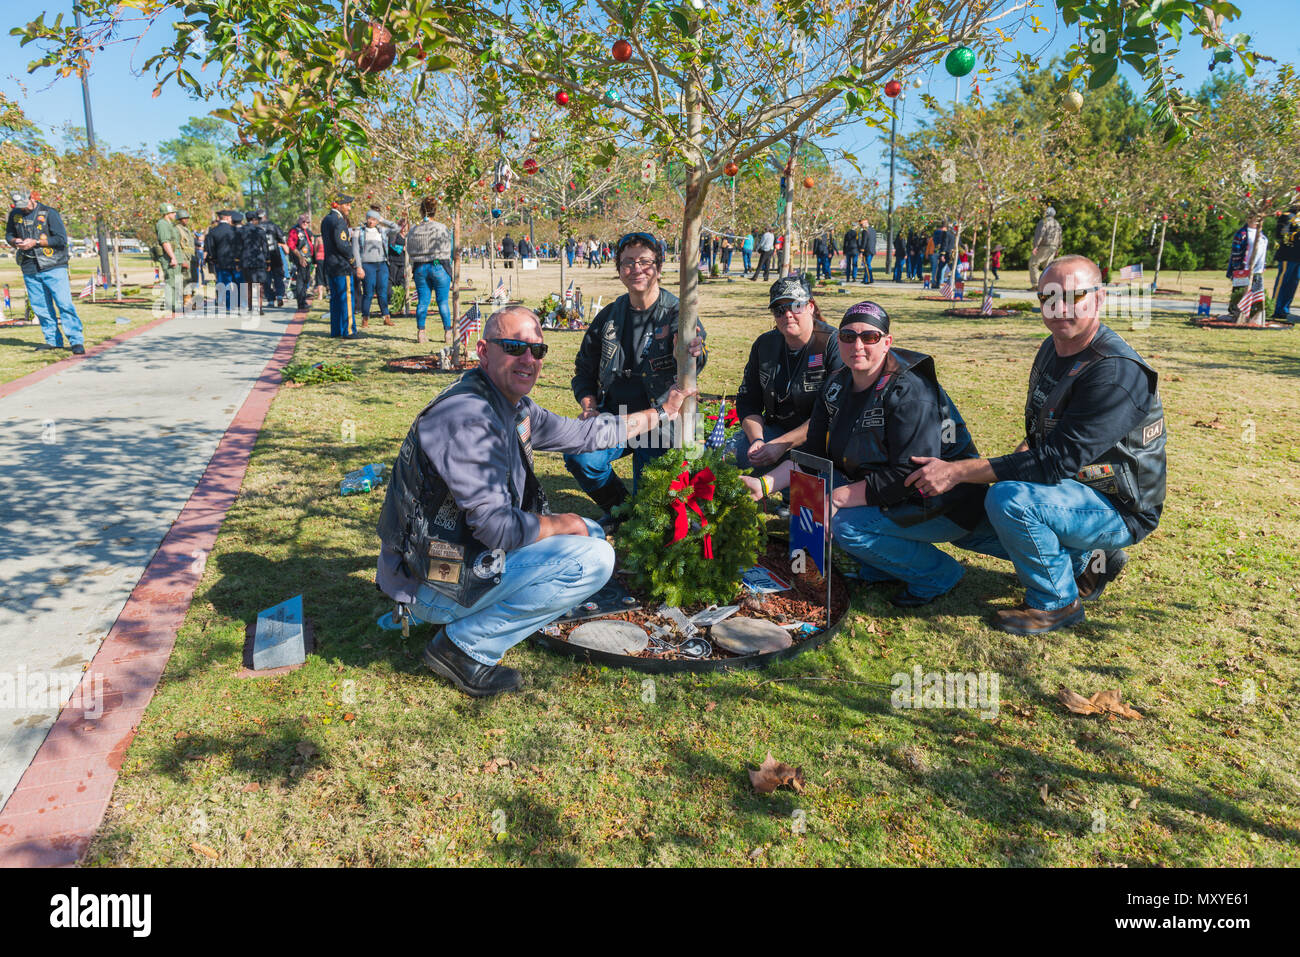 Members of the U.S. Military Vets motorcycle club of Surrency, Ga. honor Spc. Christian M. Neff at Tree # 373 following the Wreaths for Warriors Walk ceremony at Fort Stewart Dec. 17, 2016. U.S. Army Sgt. Maj. Jeff Logan (left) is from Spc. Neff's hometown in Ohio and is visiting the memorial in place of Neff's parents who could not be there. - Stock Image